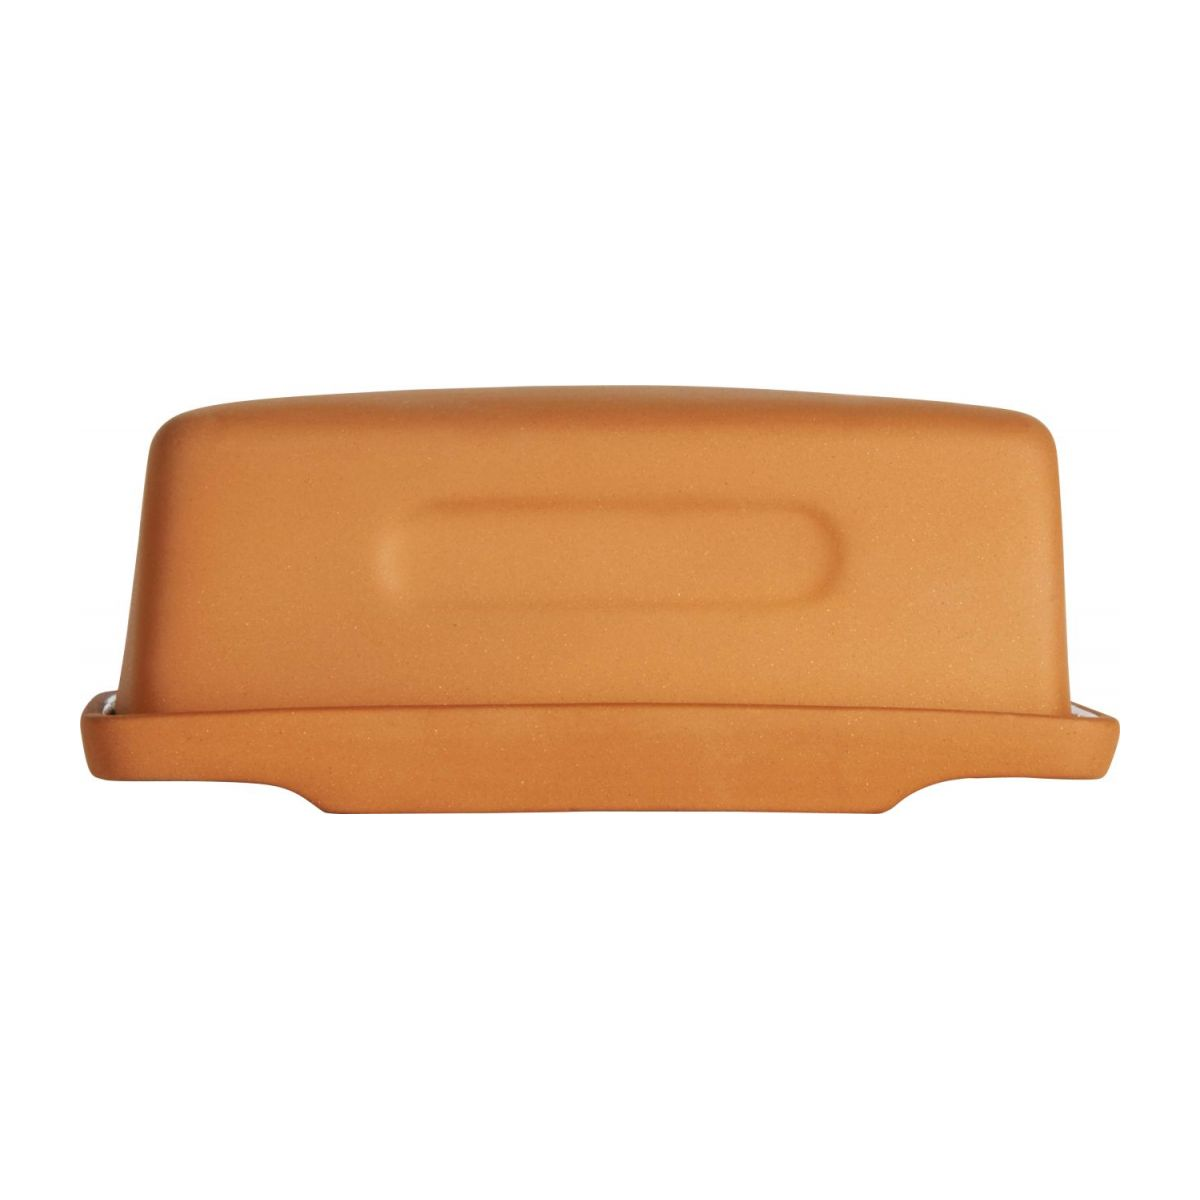 Butter dish n°4